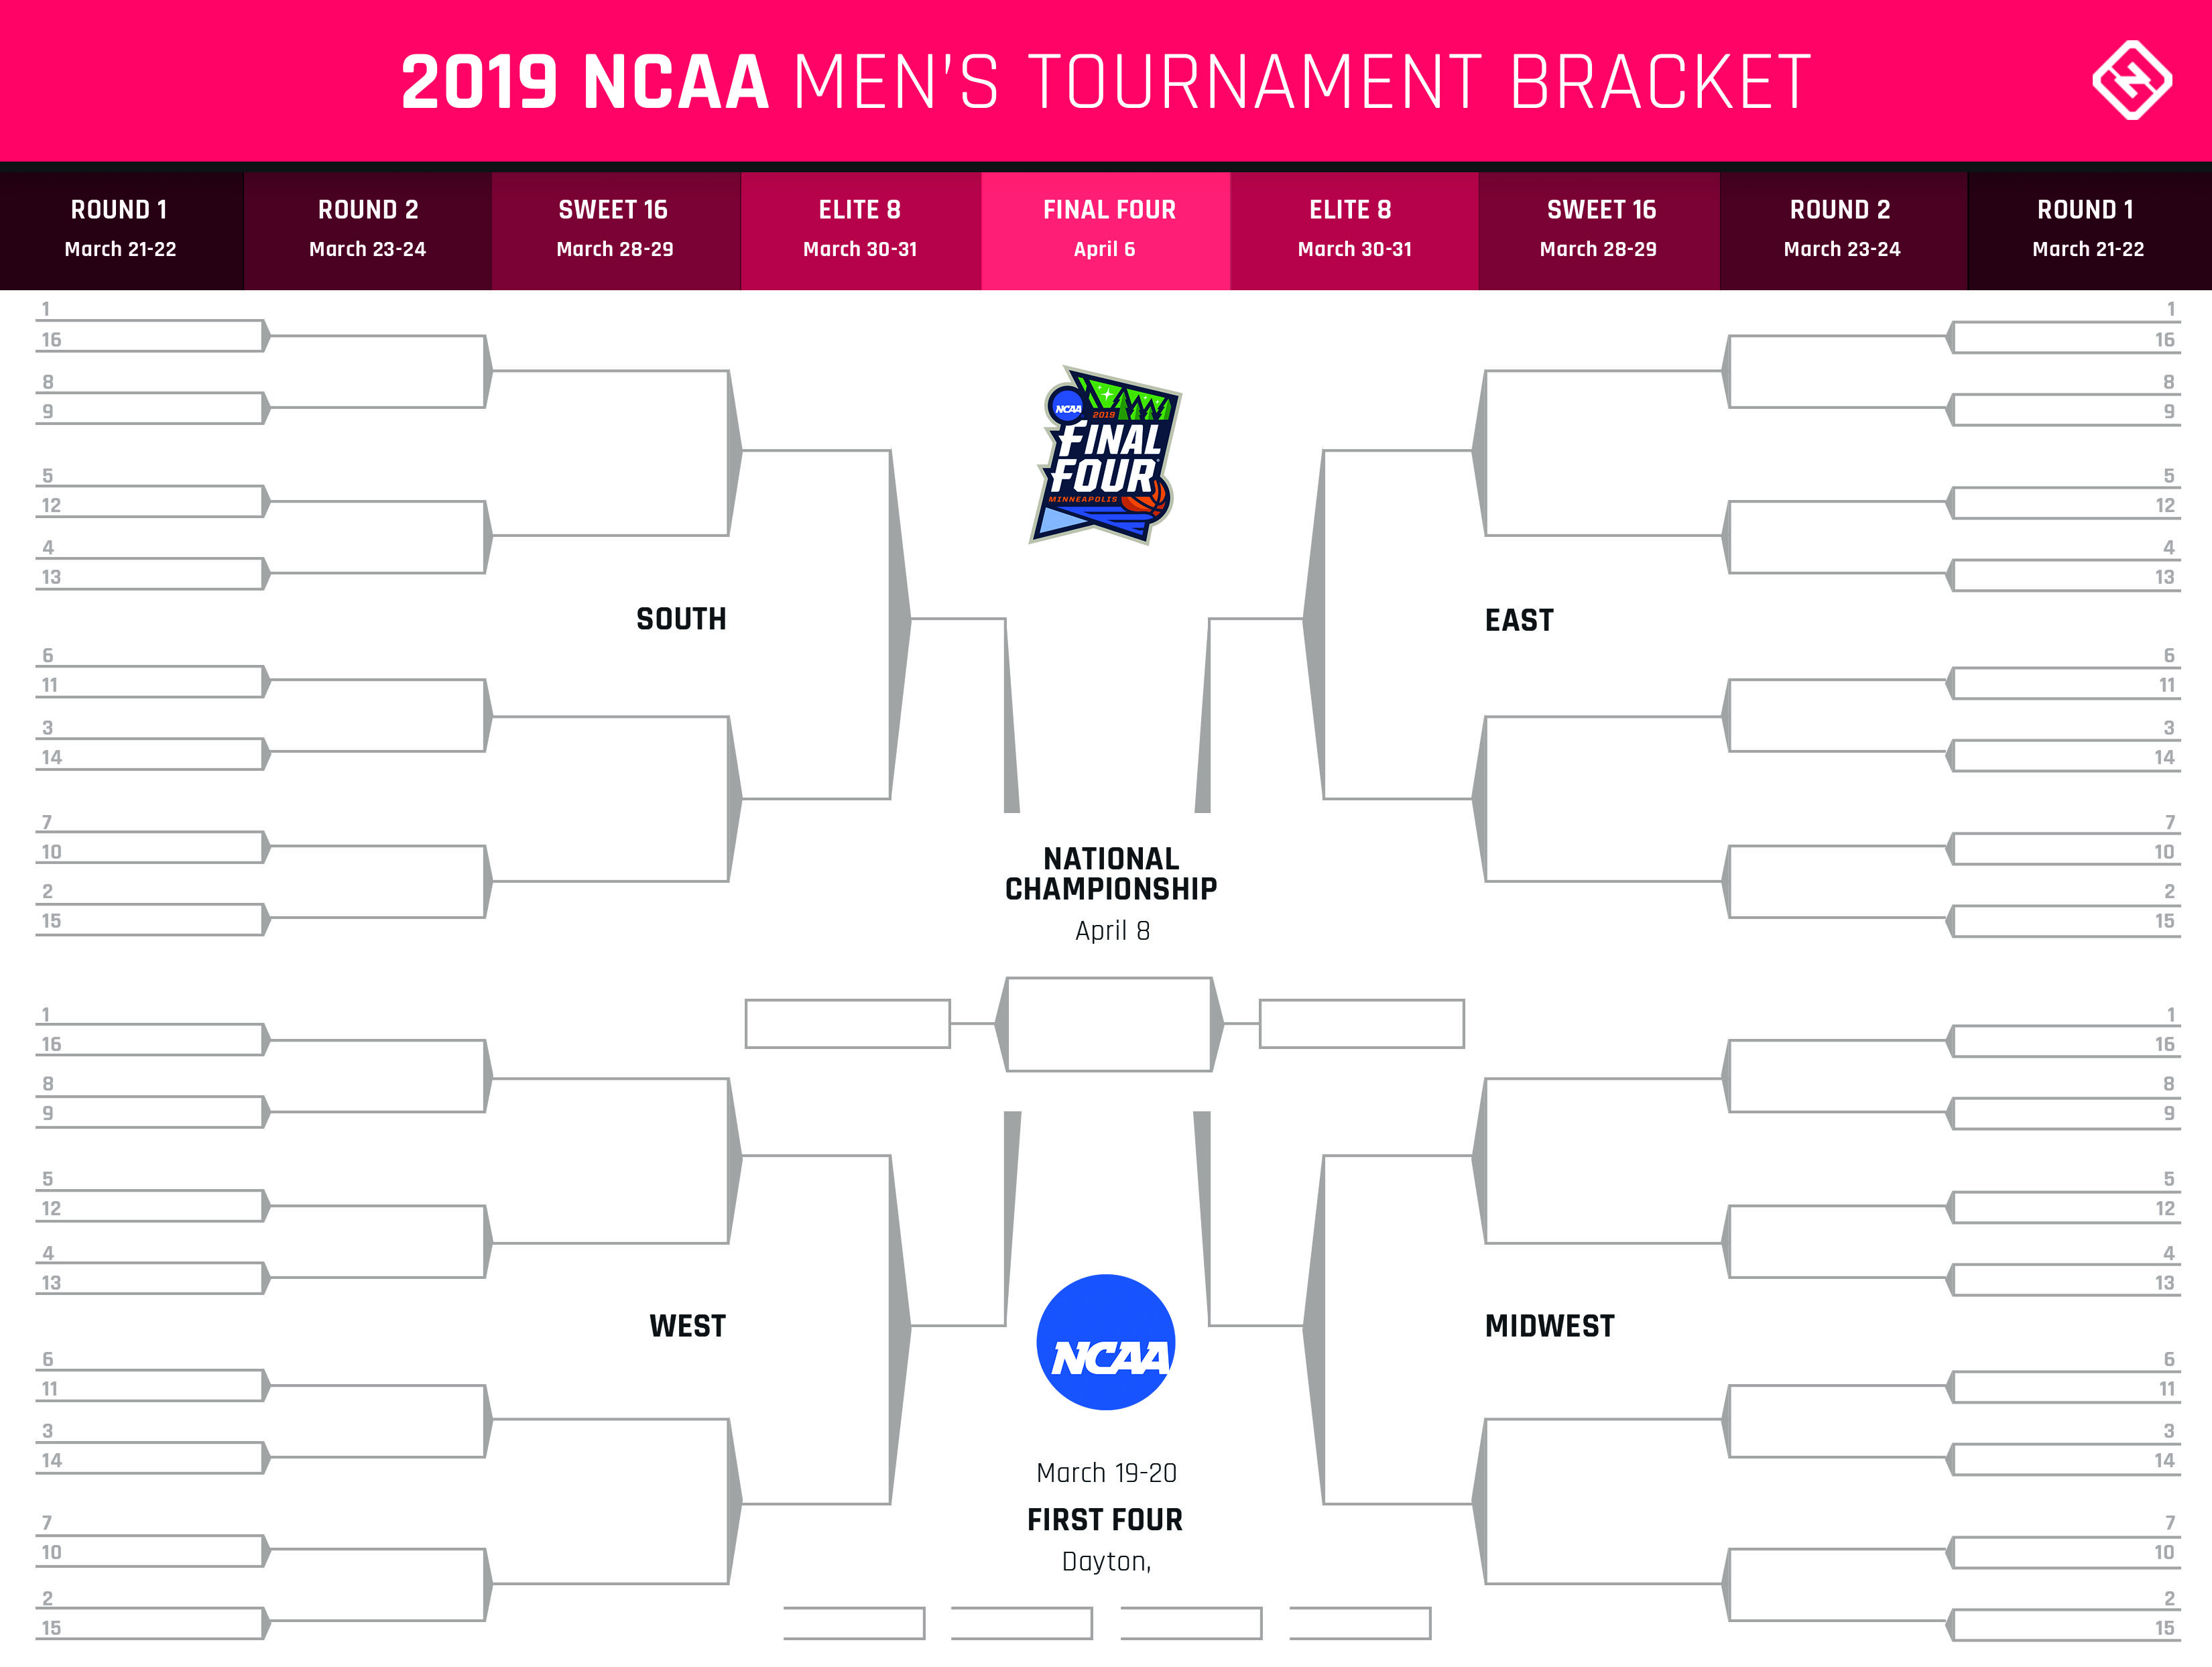 Ncaa Bracket 2019 Update First Four Results And Round 1: March Madness Bracket 2019: Dates, Times, TV Schedule